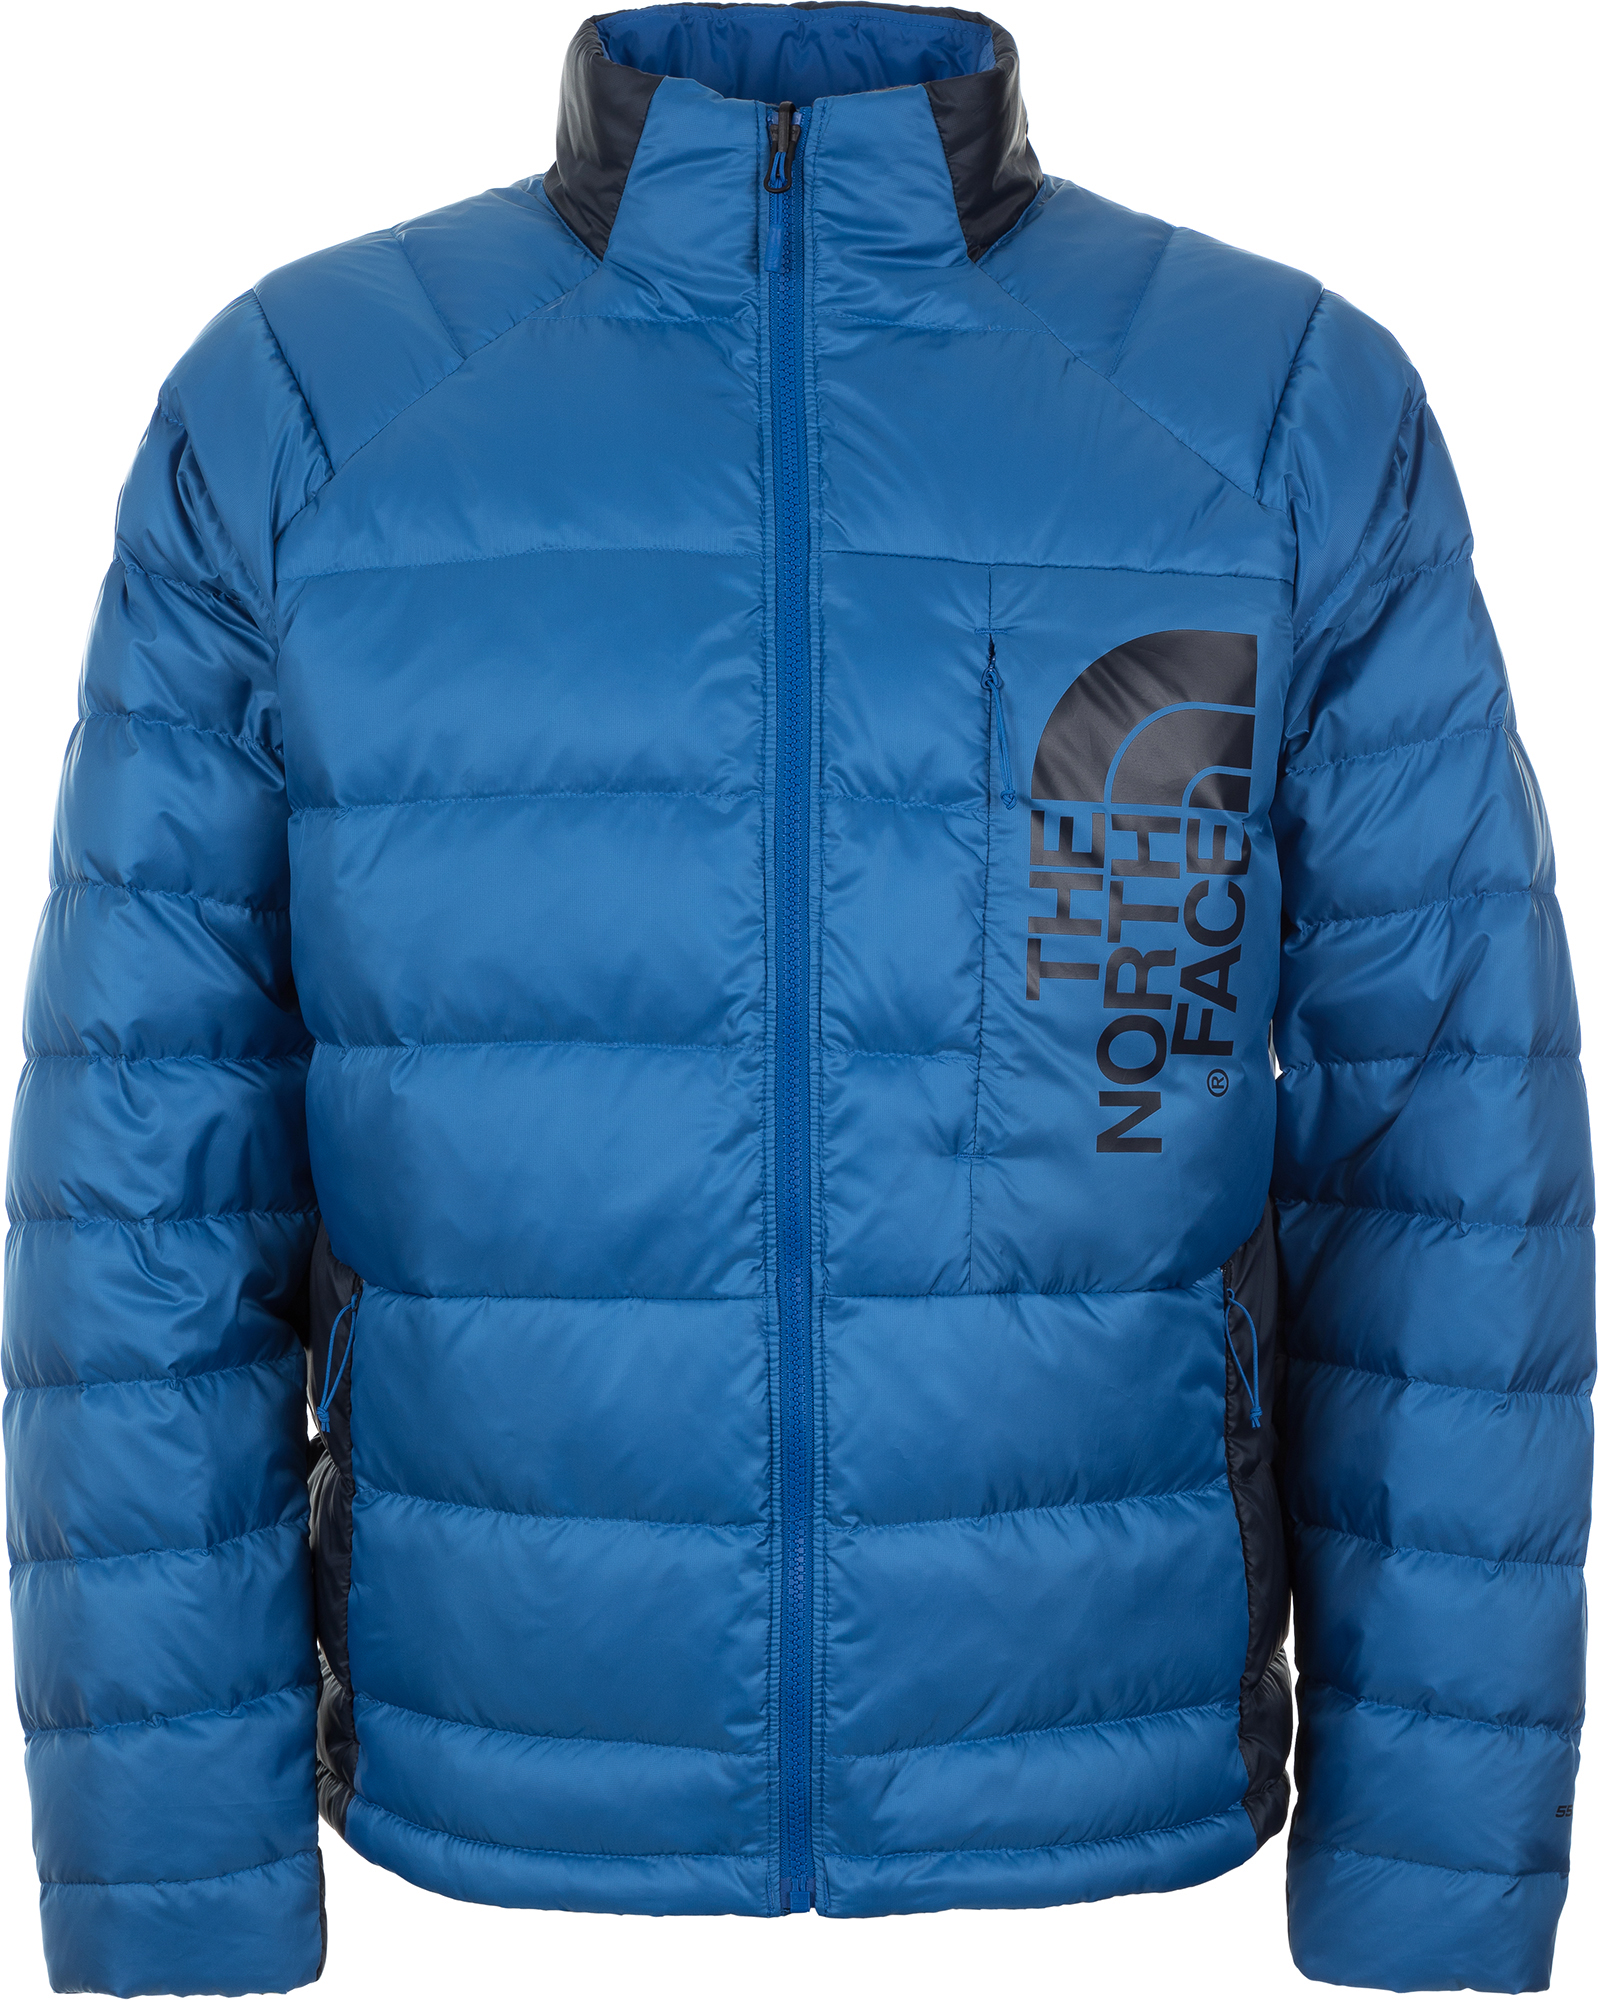 The North Face Куртка пуховая мужская The North Face Peakfrontier II, размер 50 маска для рук the face shop the face shop th019lwakfu6